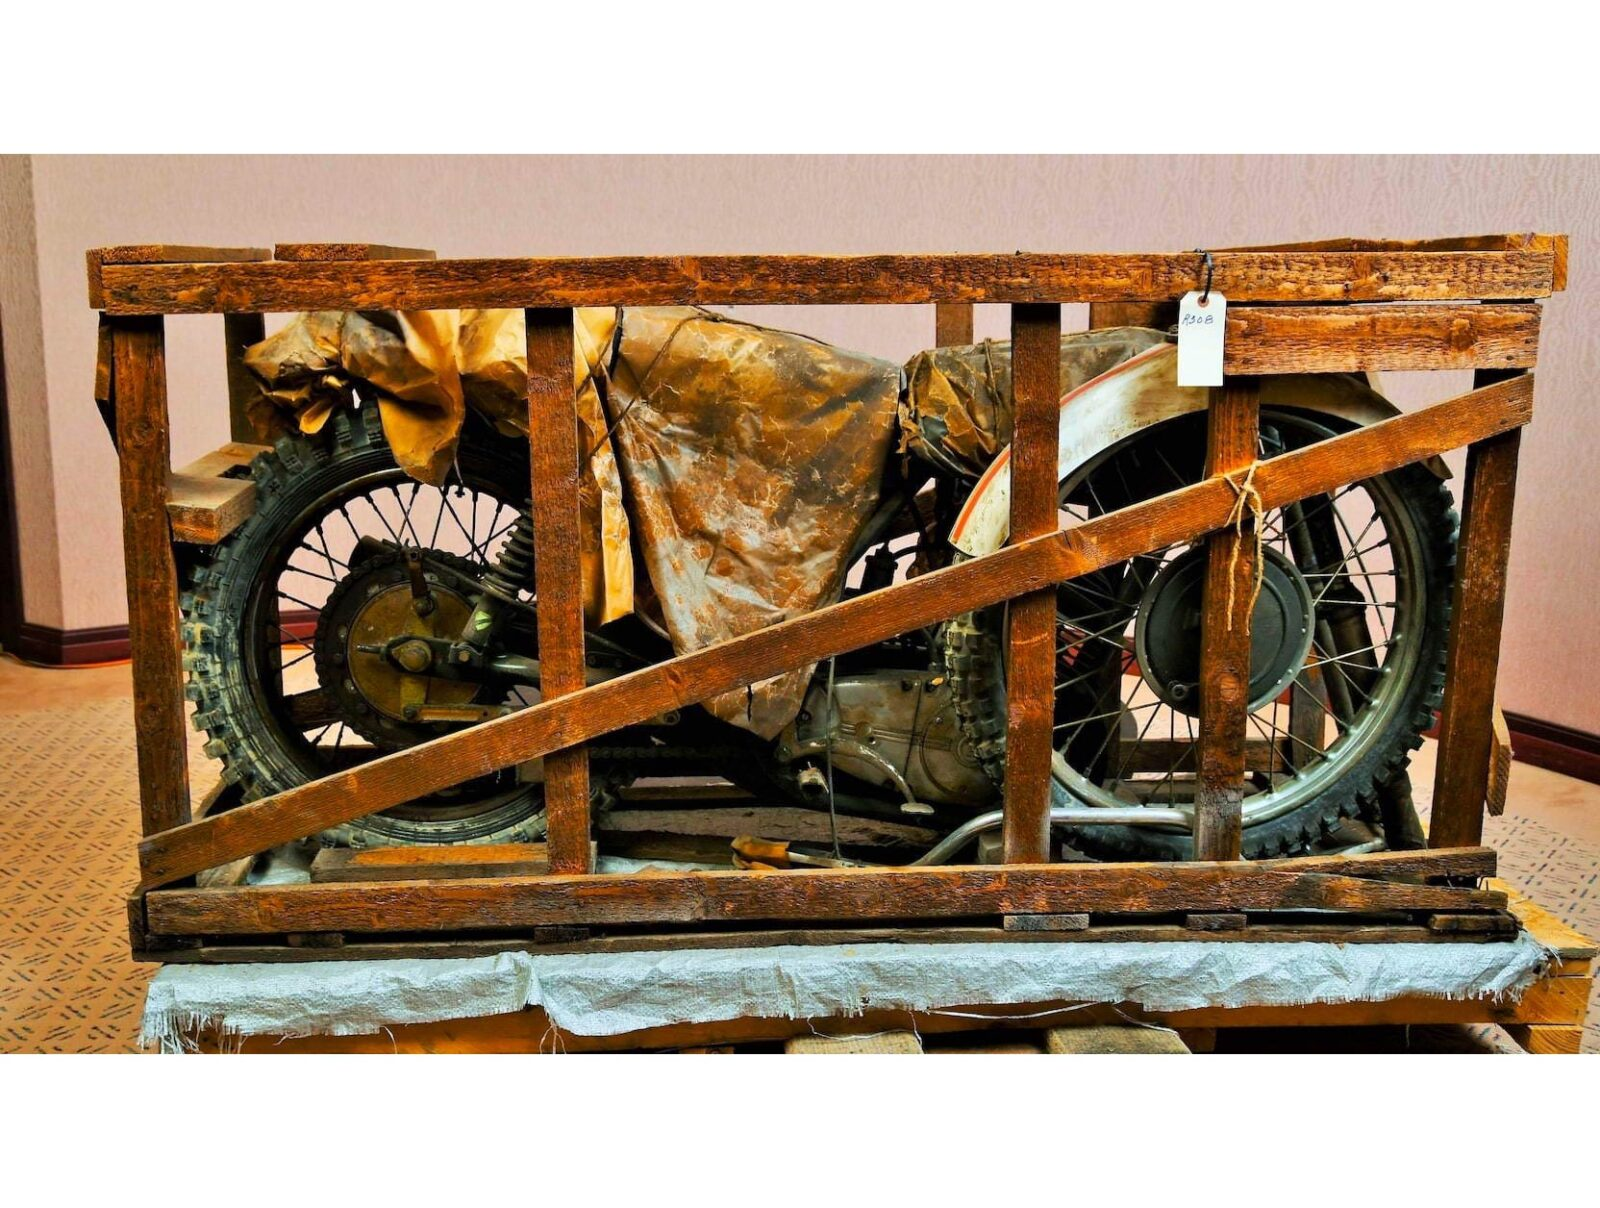 Coffin Tank CZ Motorcycle In Crate